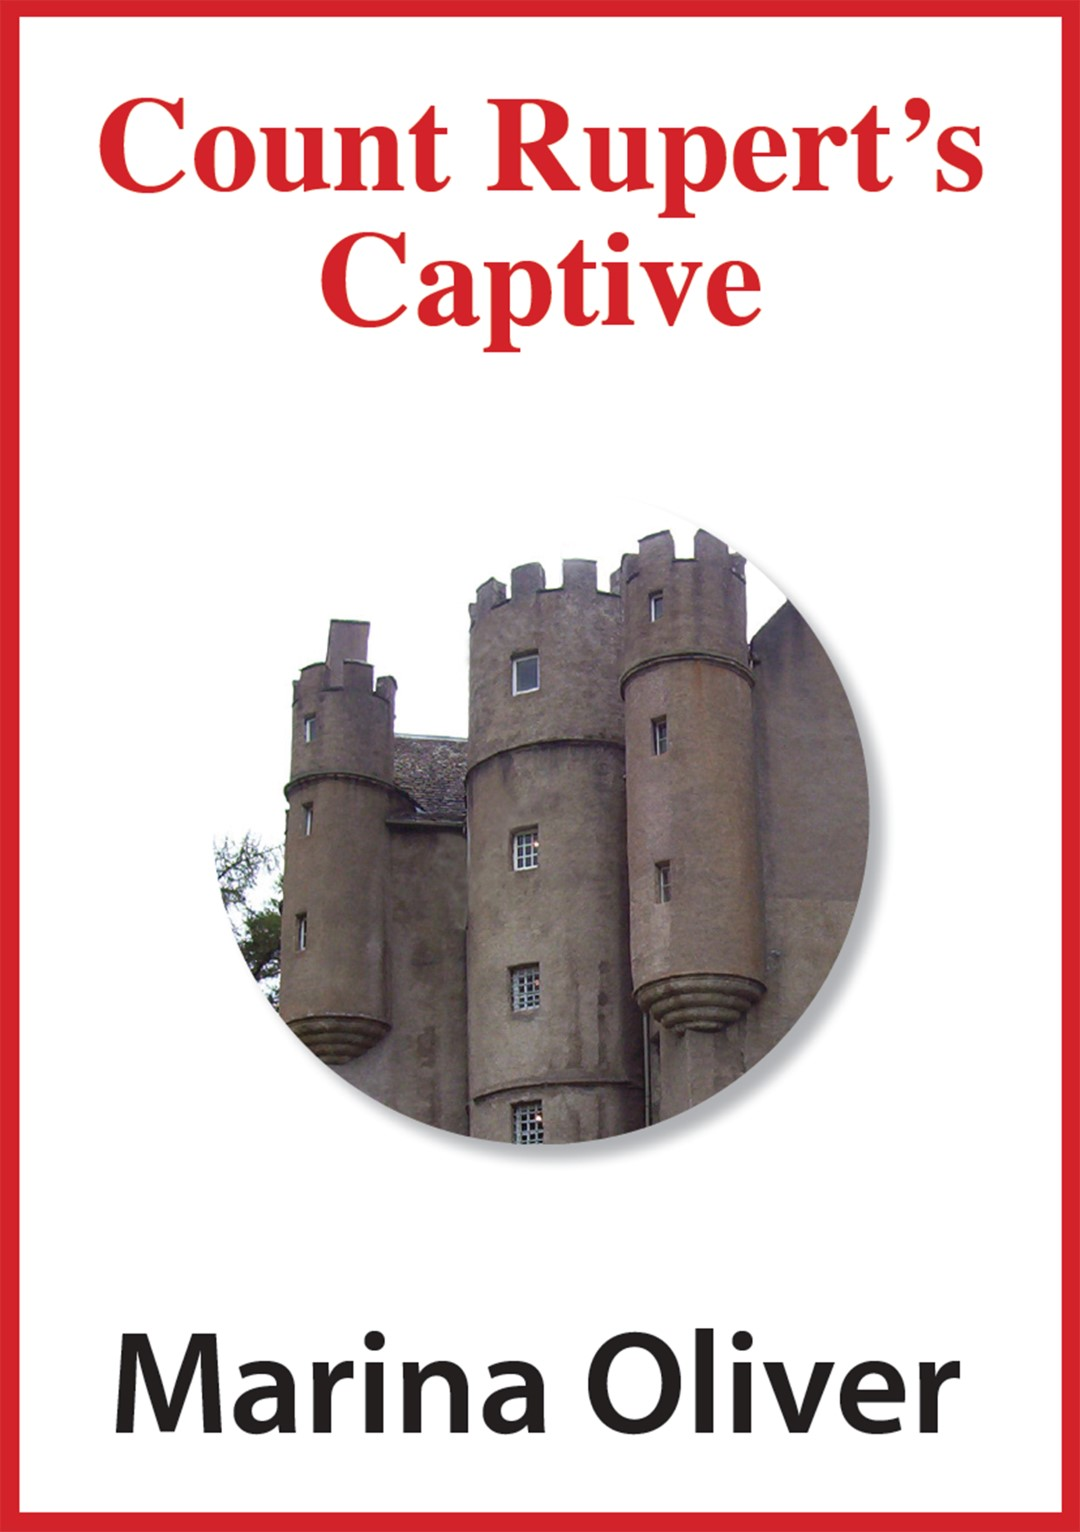 Count Rupert's Captive Ebook